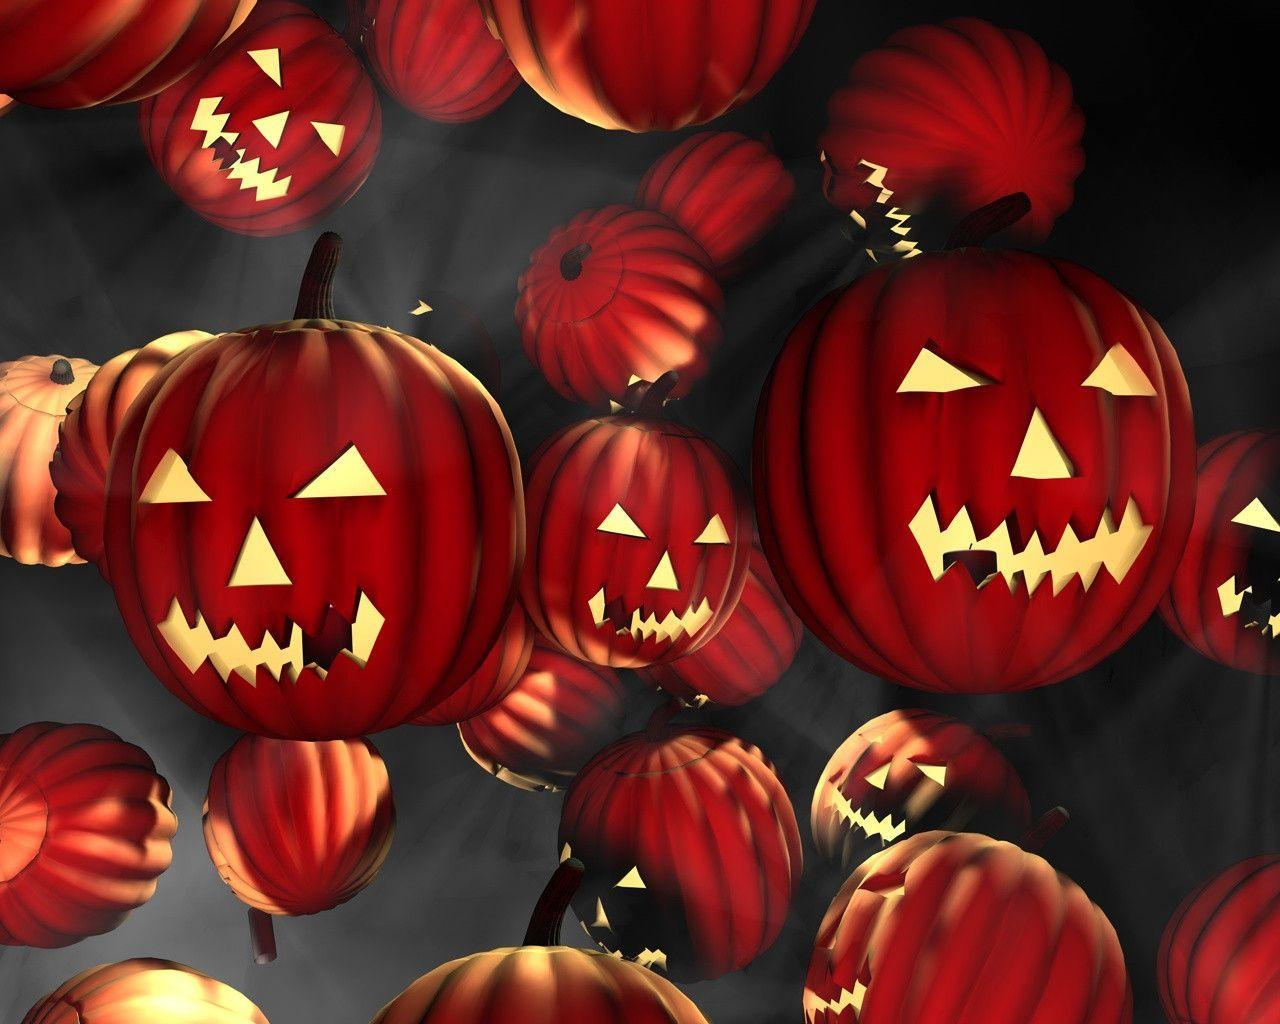 It's just an image of Irresistible Printable Halloween Images